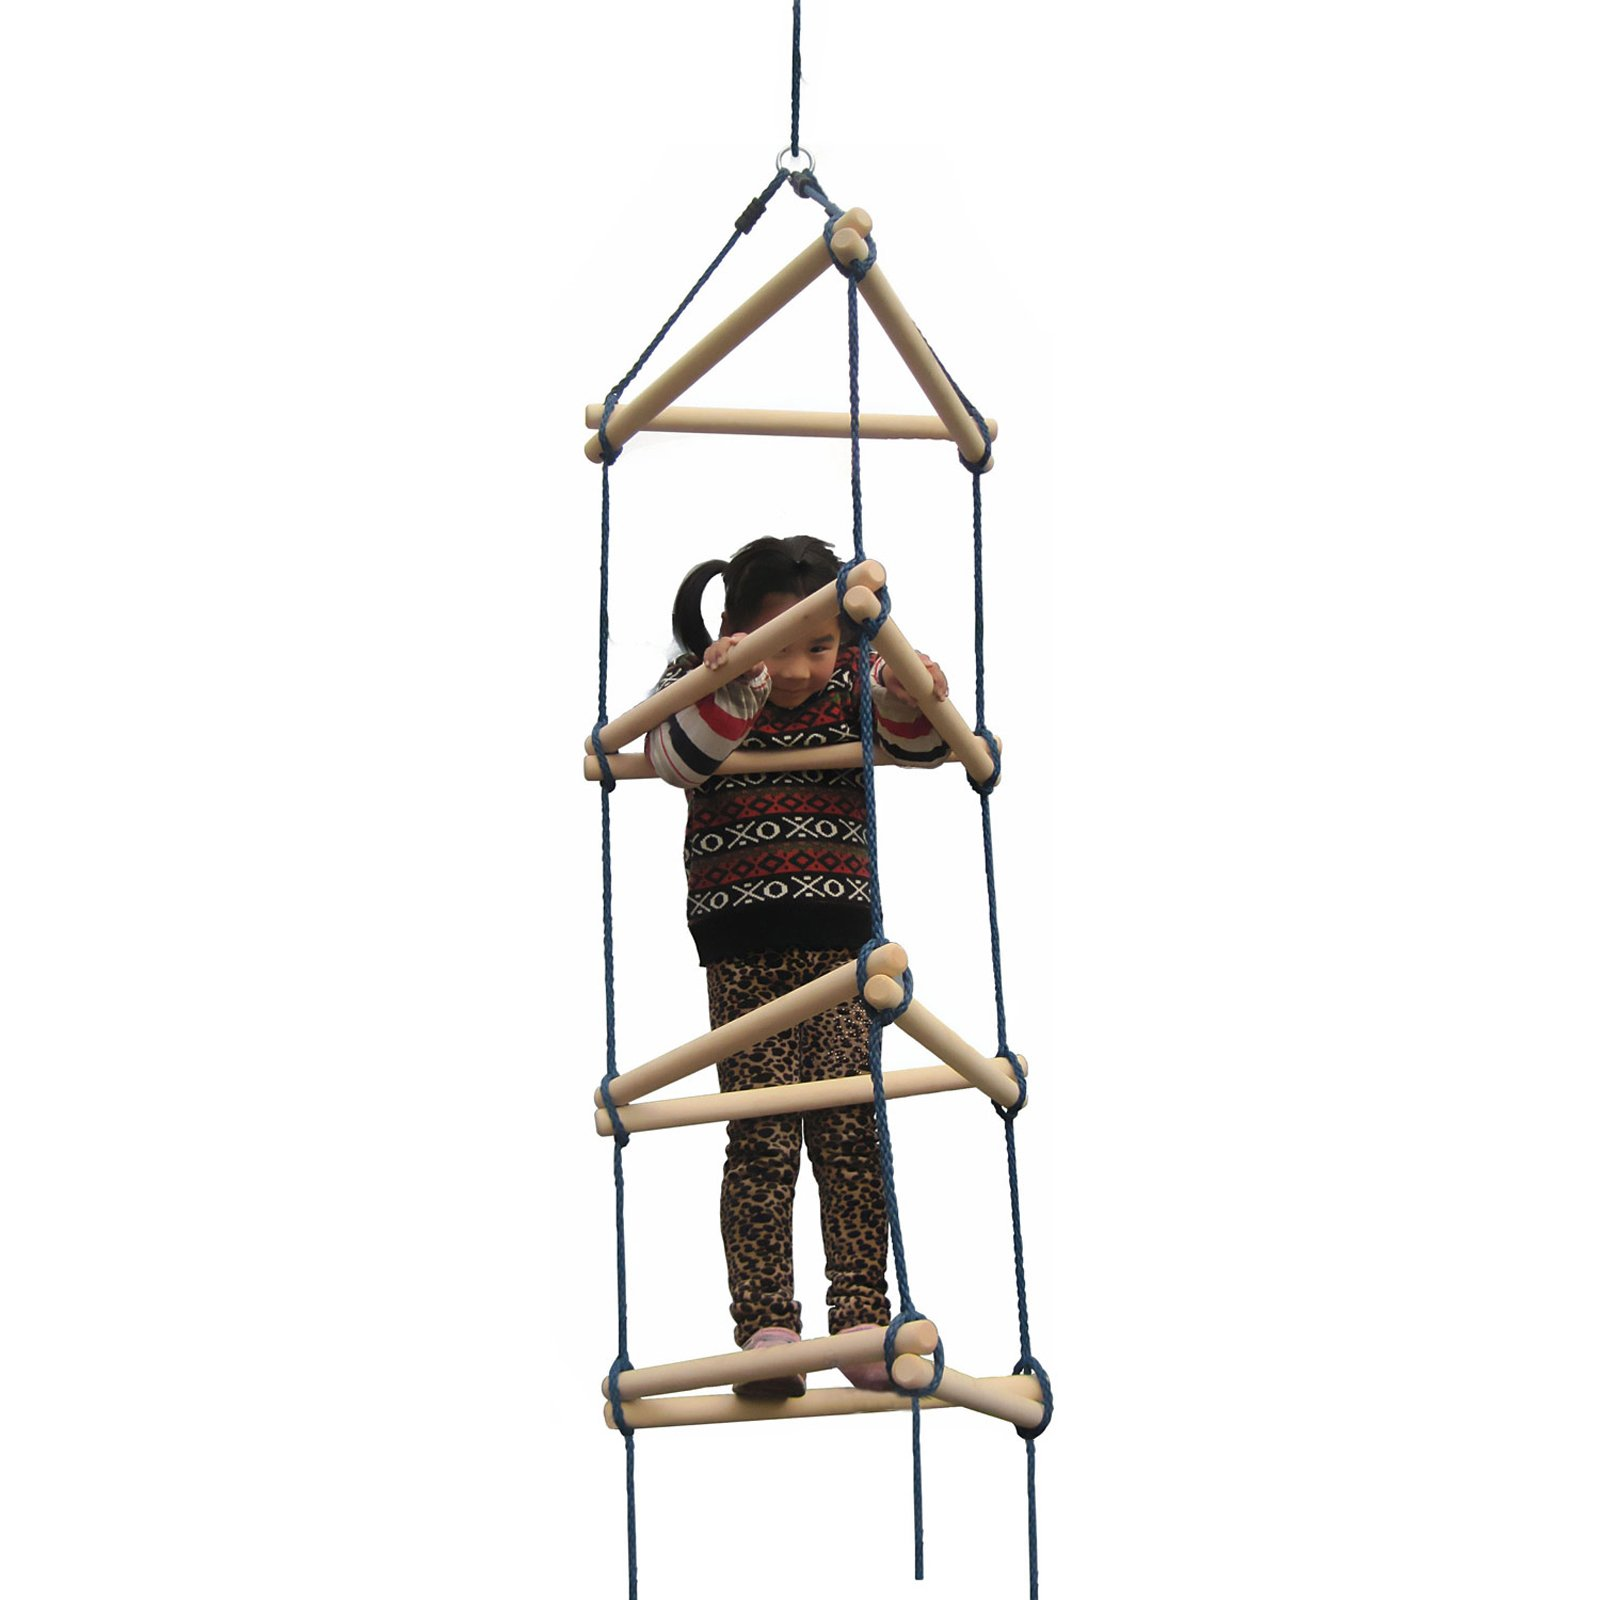 Swing-N-Slide NE 3023 Triangle Rope Ladder Swing Set Climbing Attachment with Ground Anchors, Brown by Swing-N-Slide